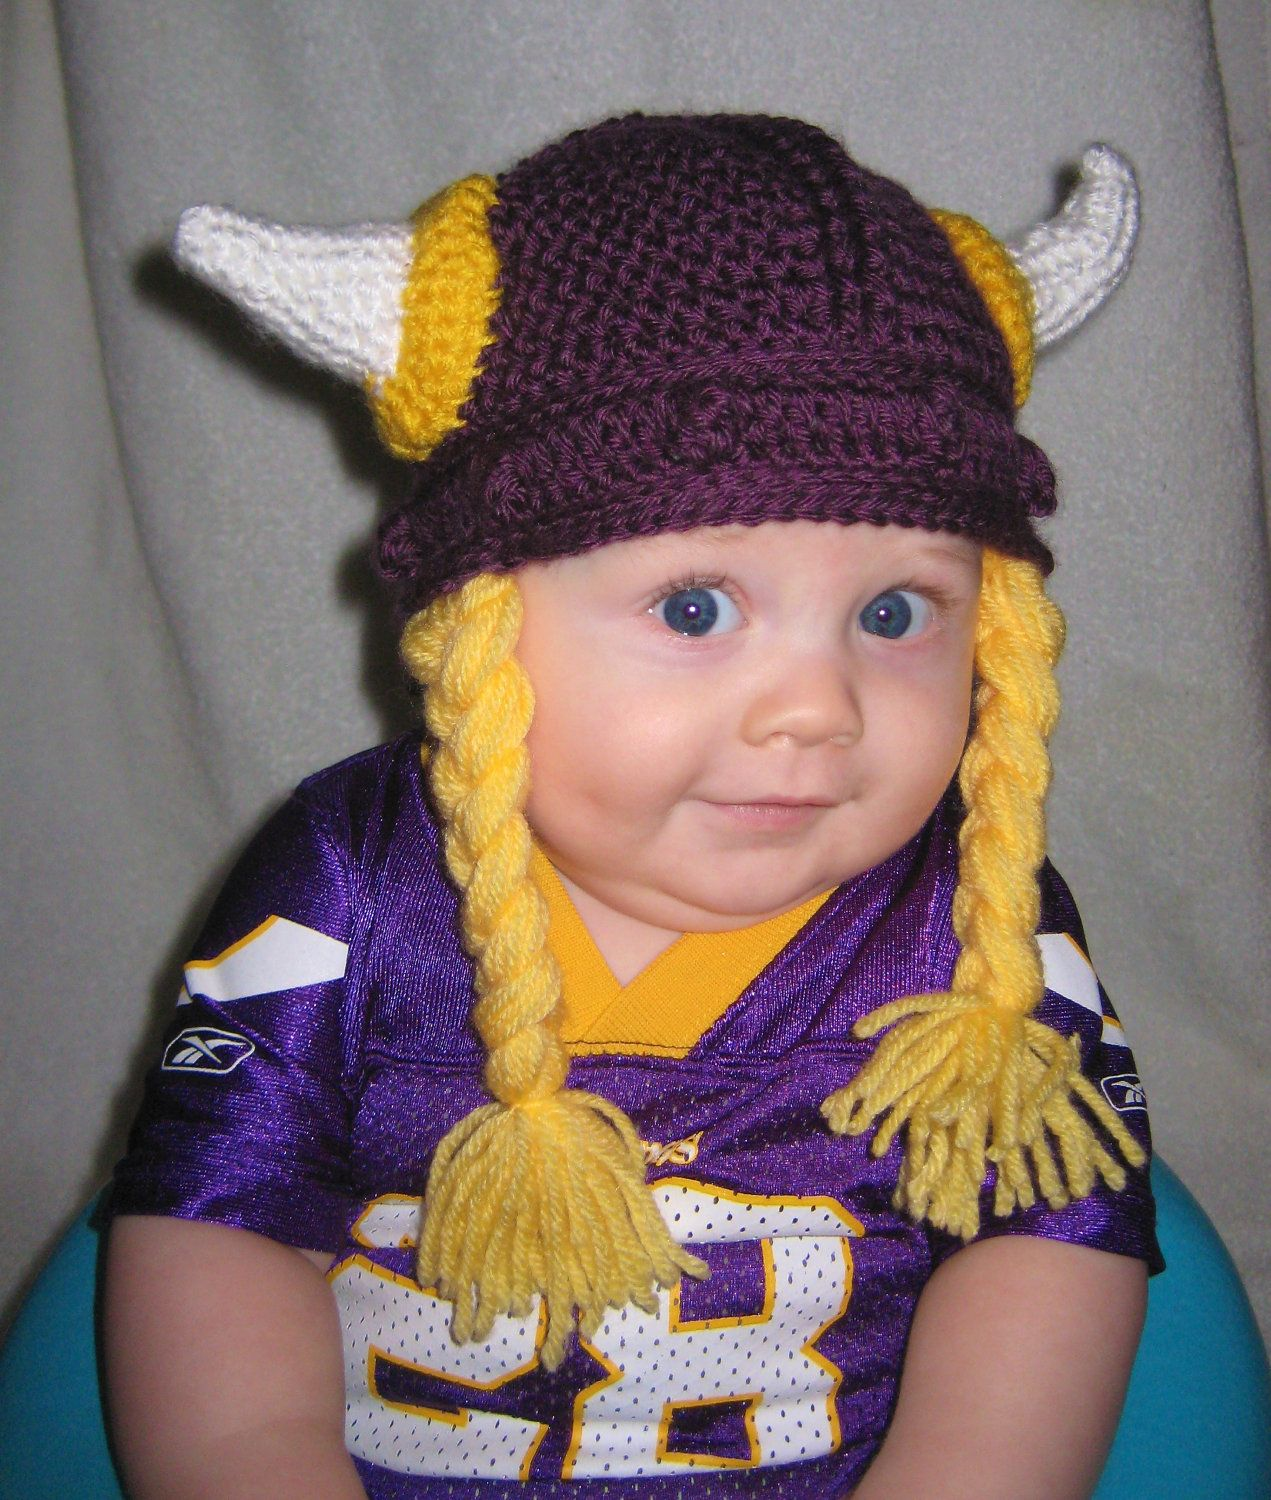 Free Crochet Patterns For Viking Hat : Crocheted Viking Helmet with Braids- Minnesota Vikings ...